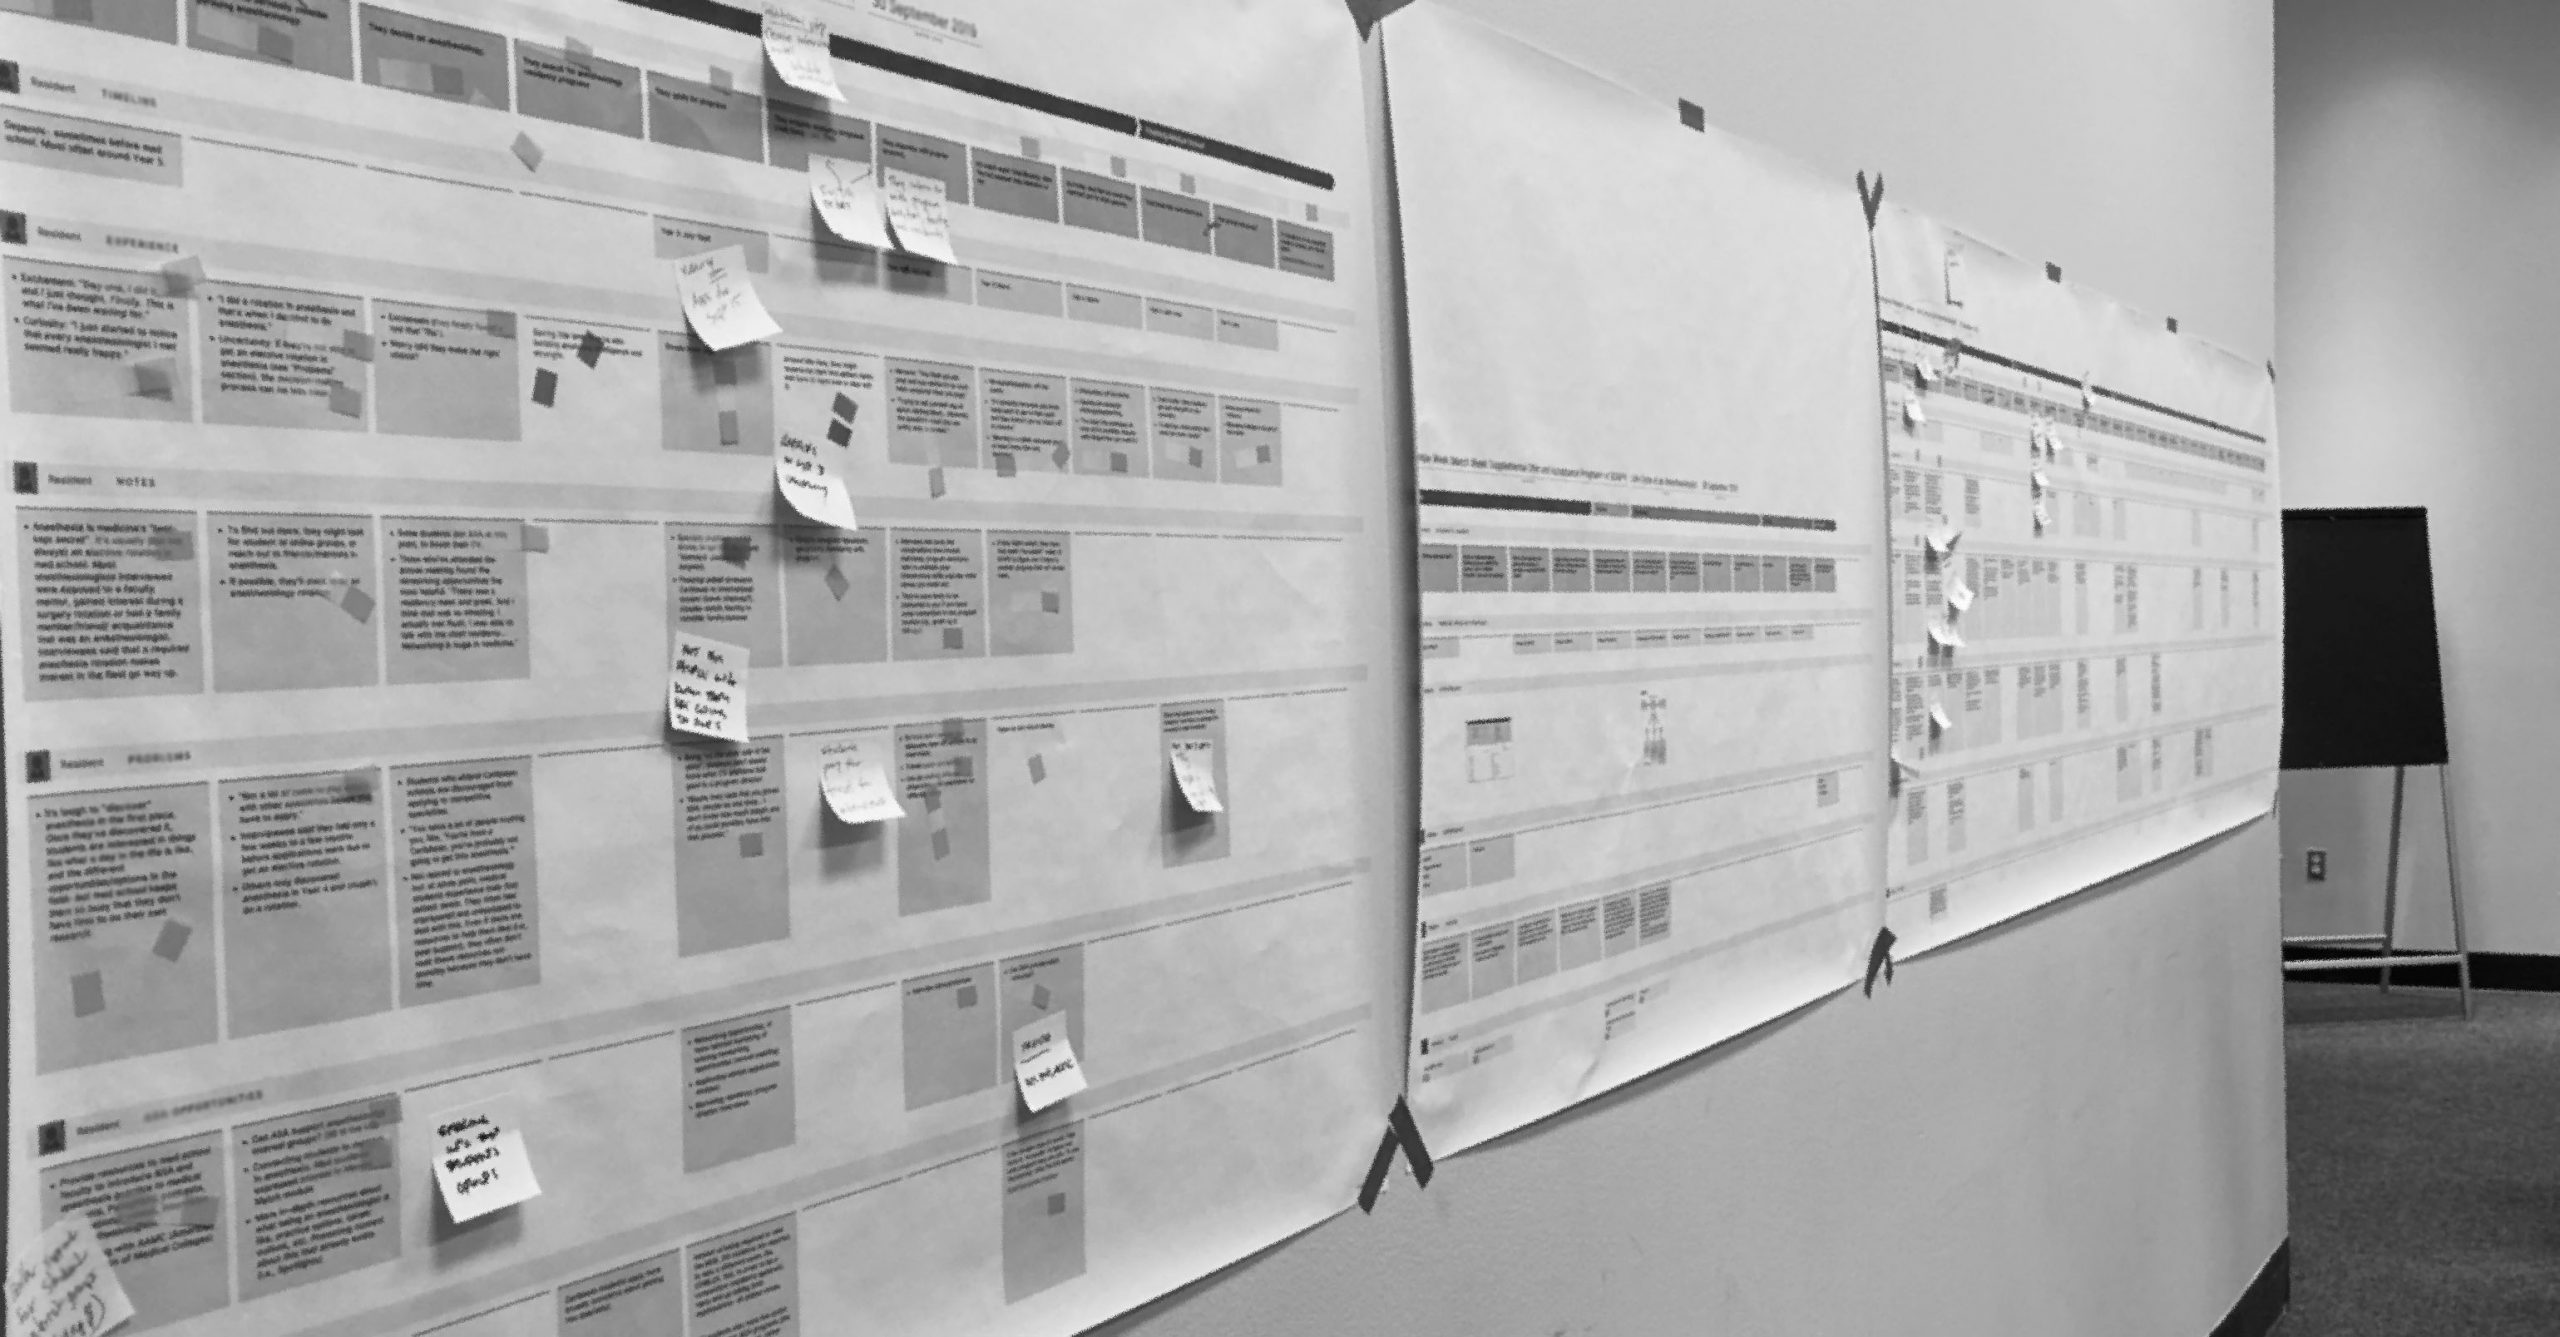 Sample image of a customer journey map built using paper prototyping in a UX workshop